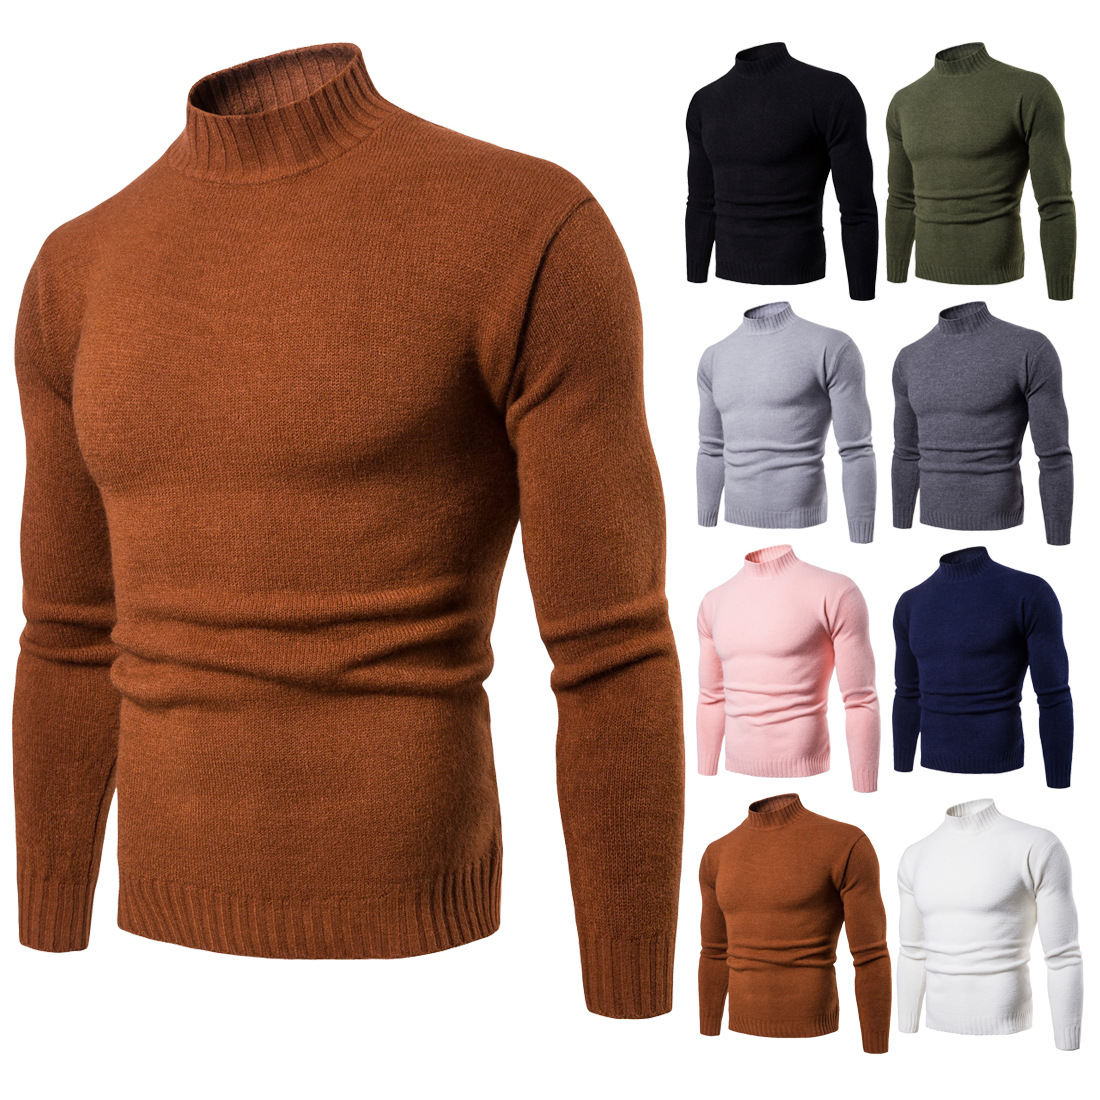 MYAZHOU Winter Warm Turtleneck Sweater Men Fashion Solid Knitted Mens Sweaters 2018 Casual Slim Fit Pullover Male Double Colla